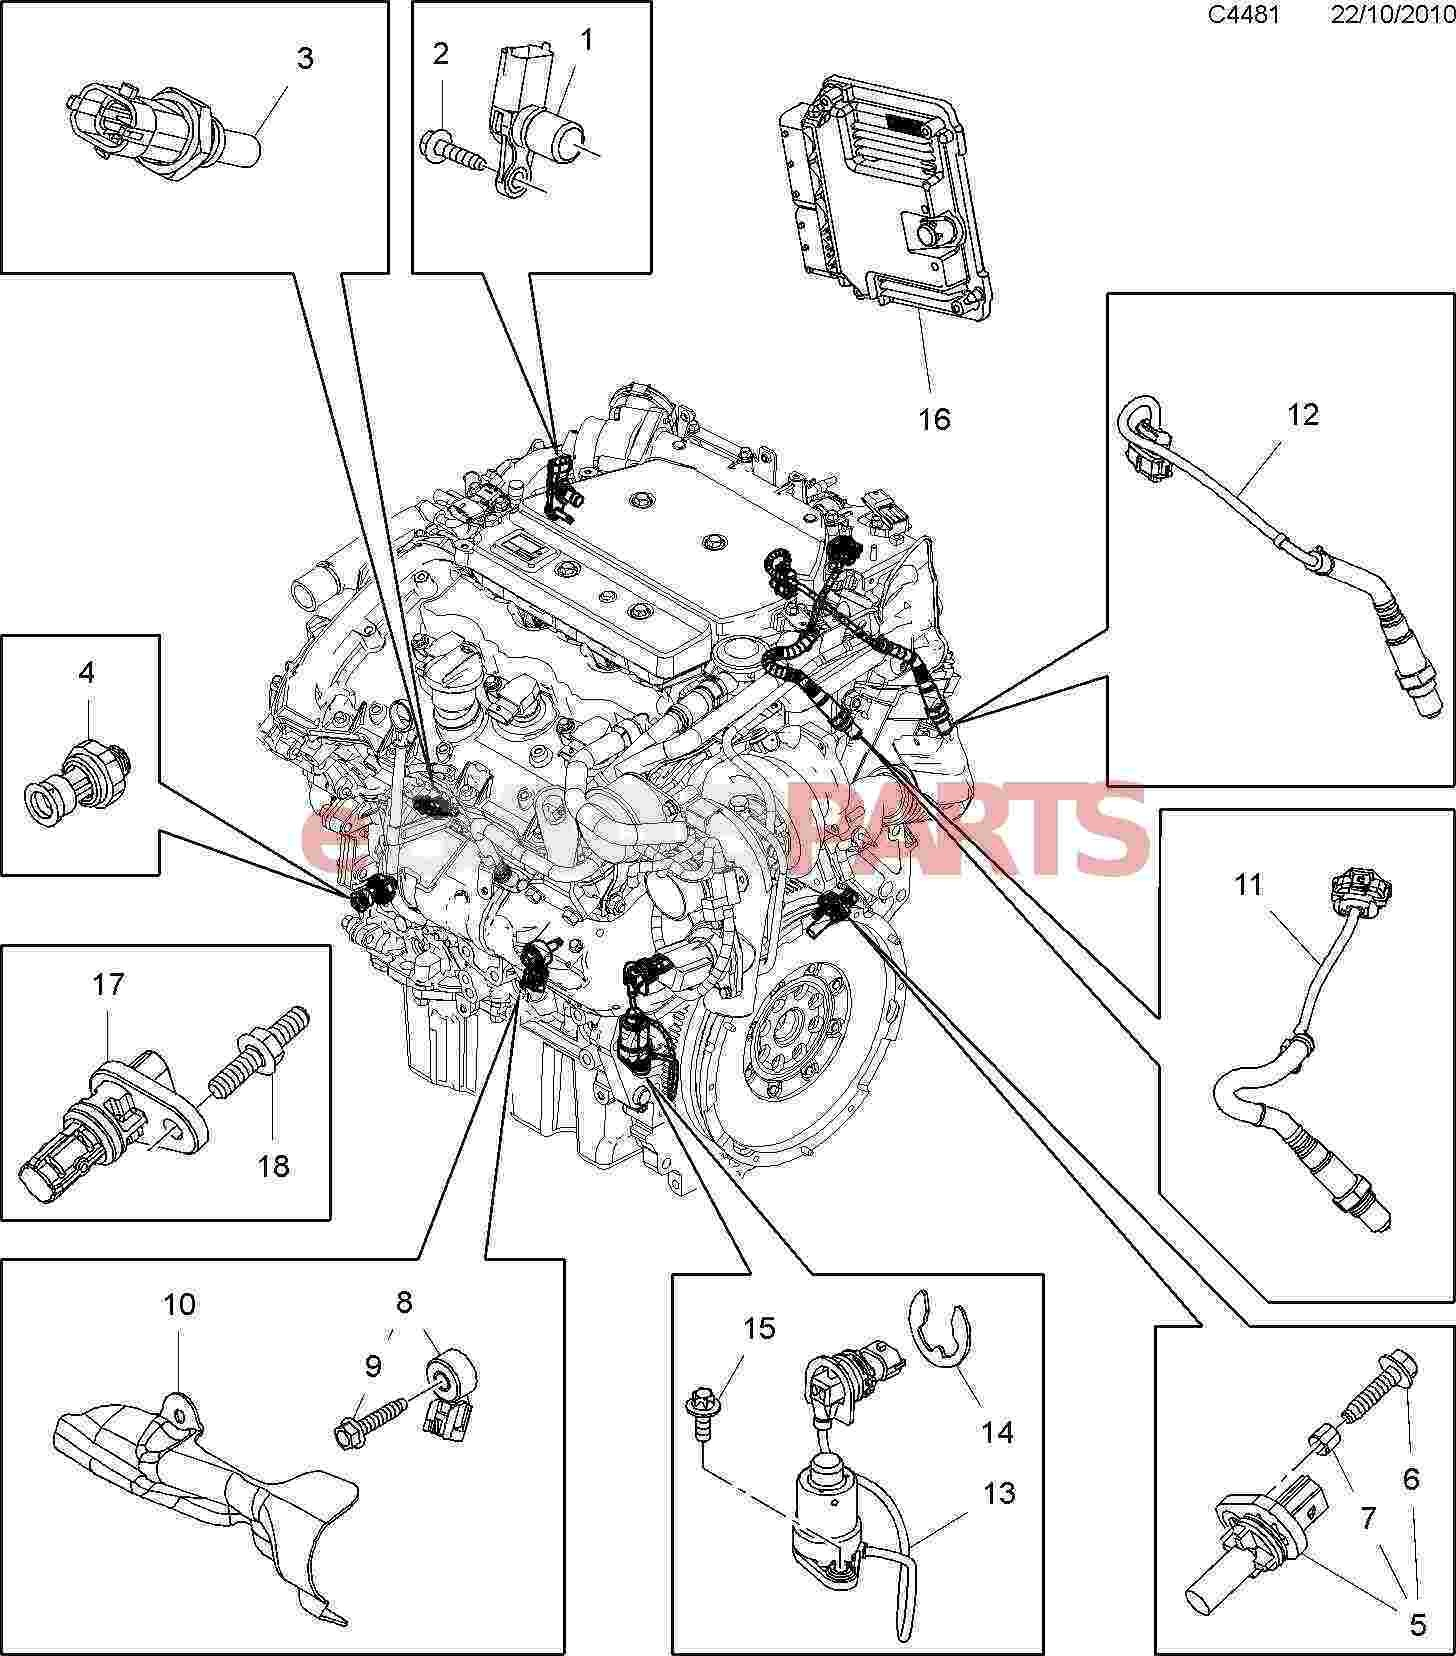 86 Cj7 Engine Wiring Library 1984 Jeep Cj Diagram Saab 9 3 Auto Electrical 2008 Dodge Avenger